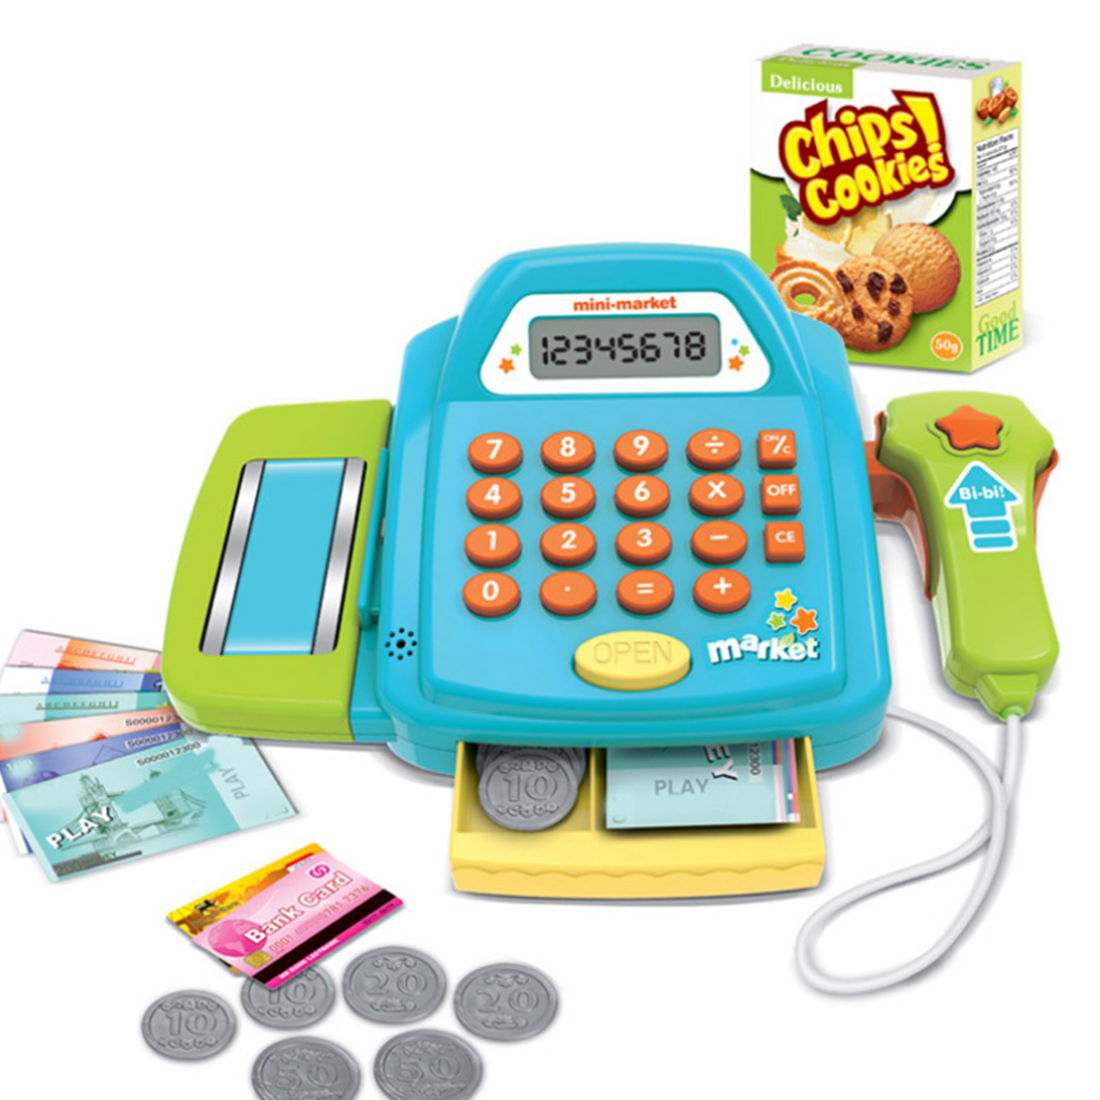 NFSTRIKE Funny Pretend Play Furniture Toys Cash Register Cashier Children Early Educational Toy for Kids Boys Girls - Pink Blue